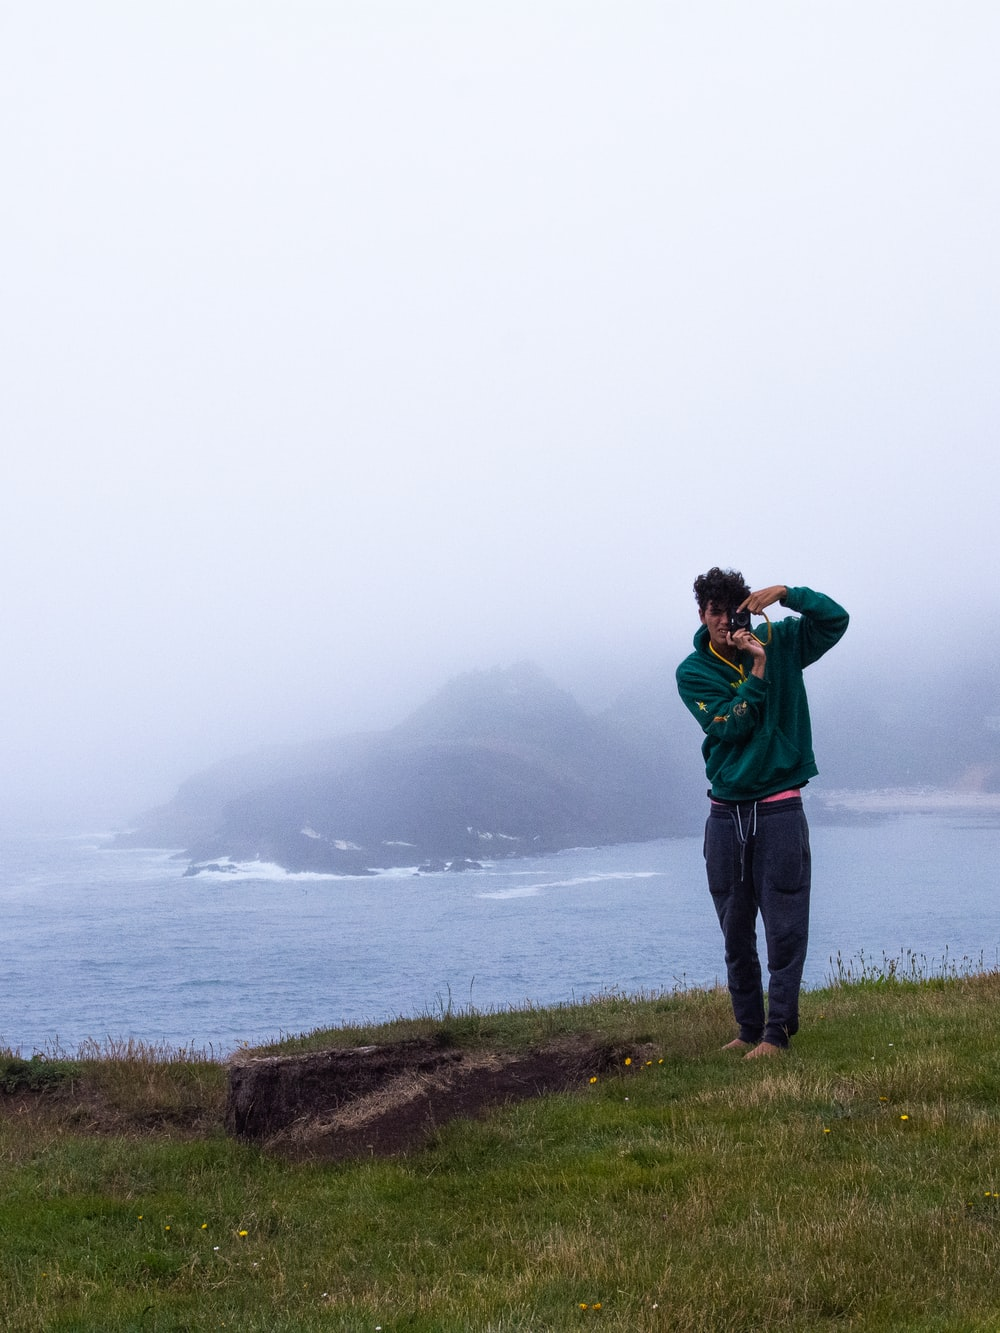 man in green hoodie standing on green grass field near body of water during daytime